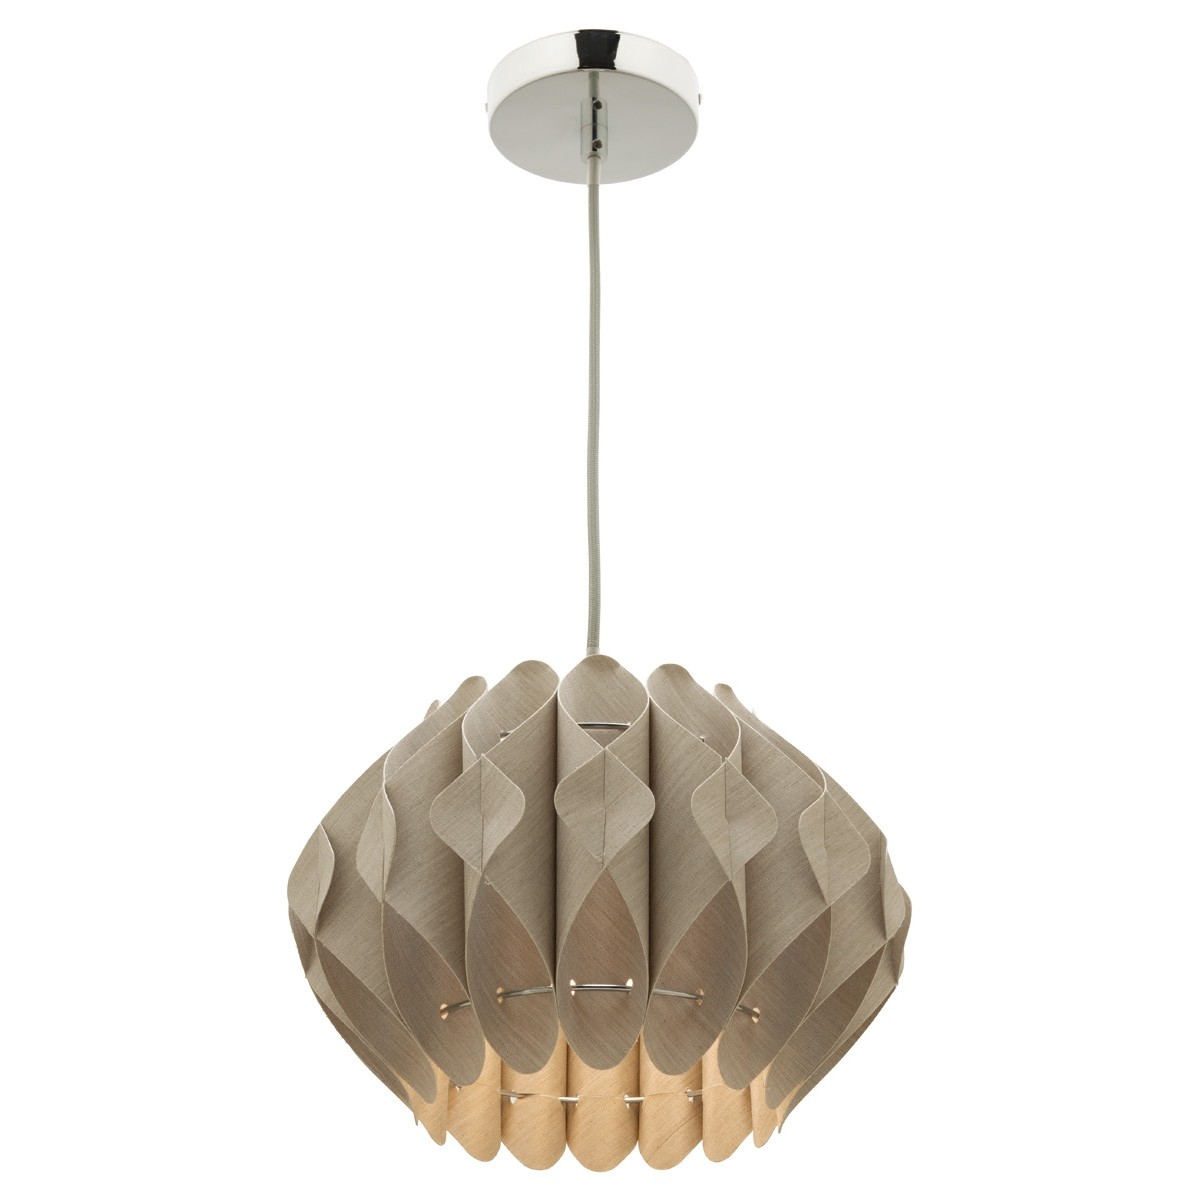 Missy 1 Light Fabric Pendant Light, Small